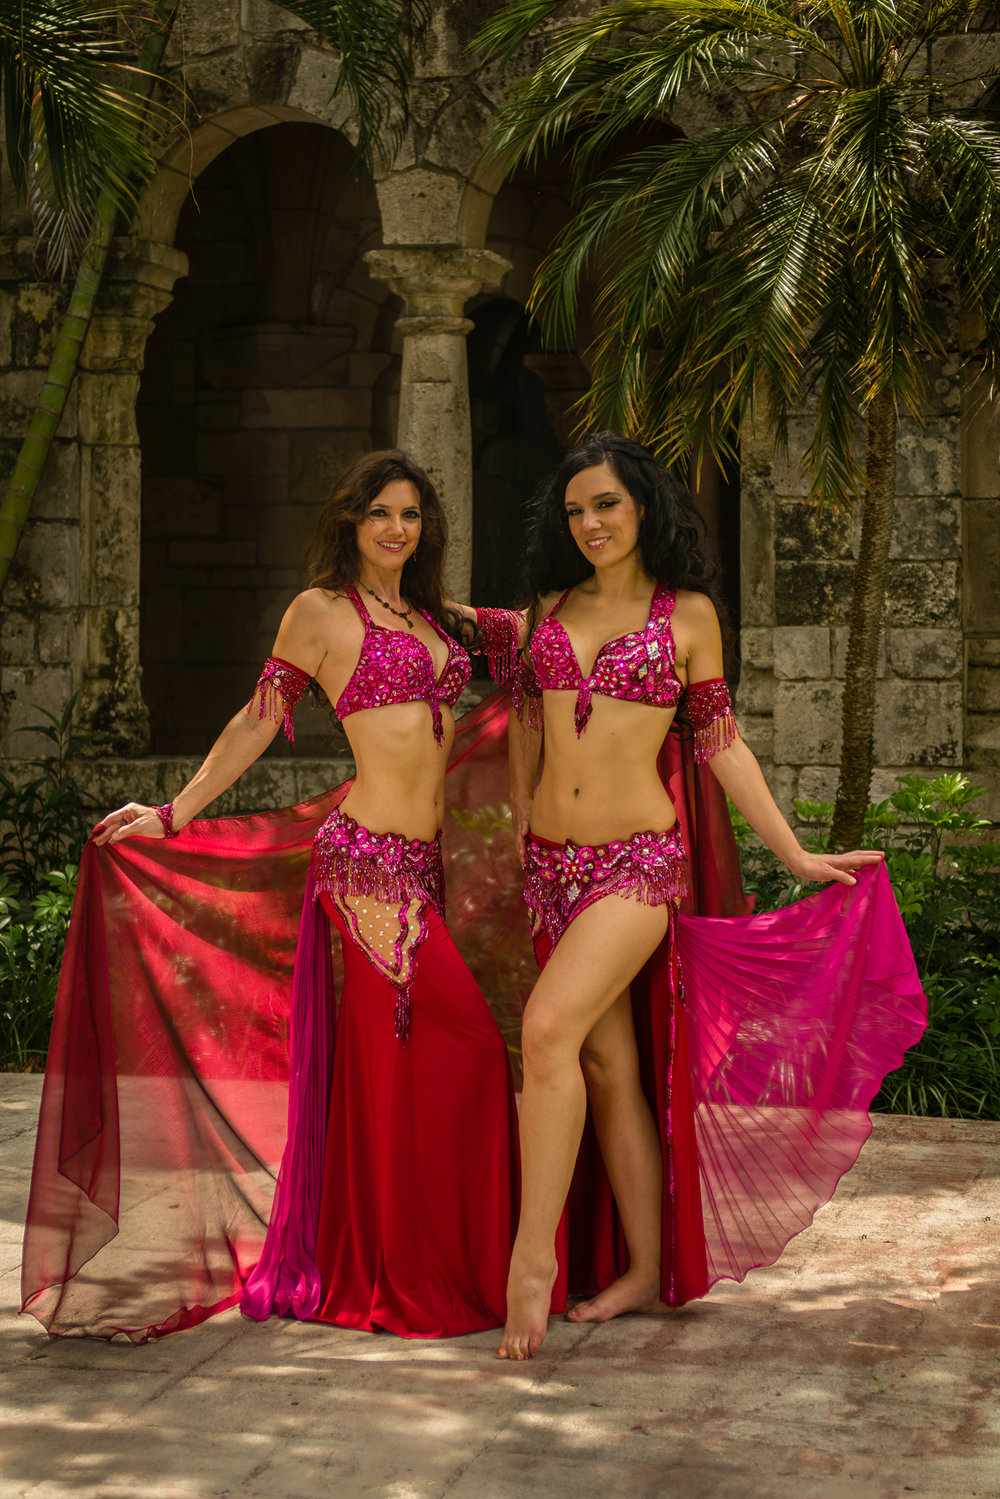 Wine and Rose Romance Bella Belly Dance Costume Miami Belly Dancer